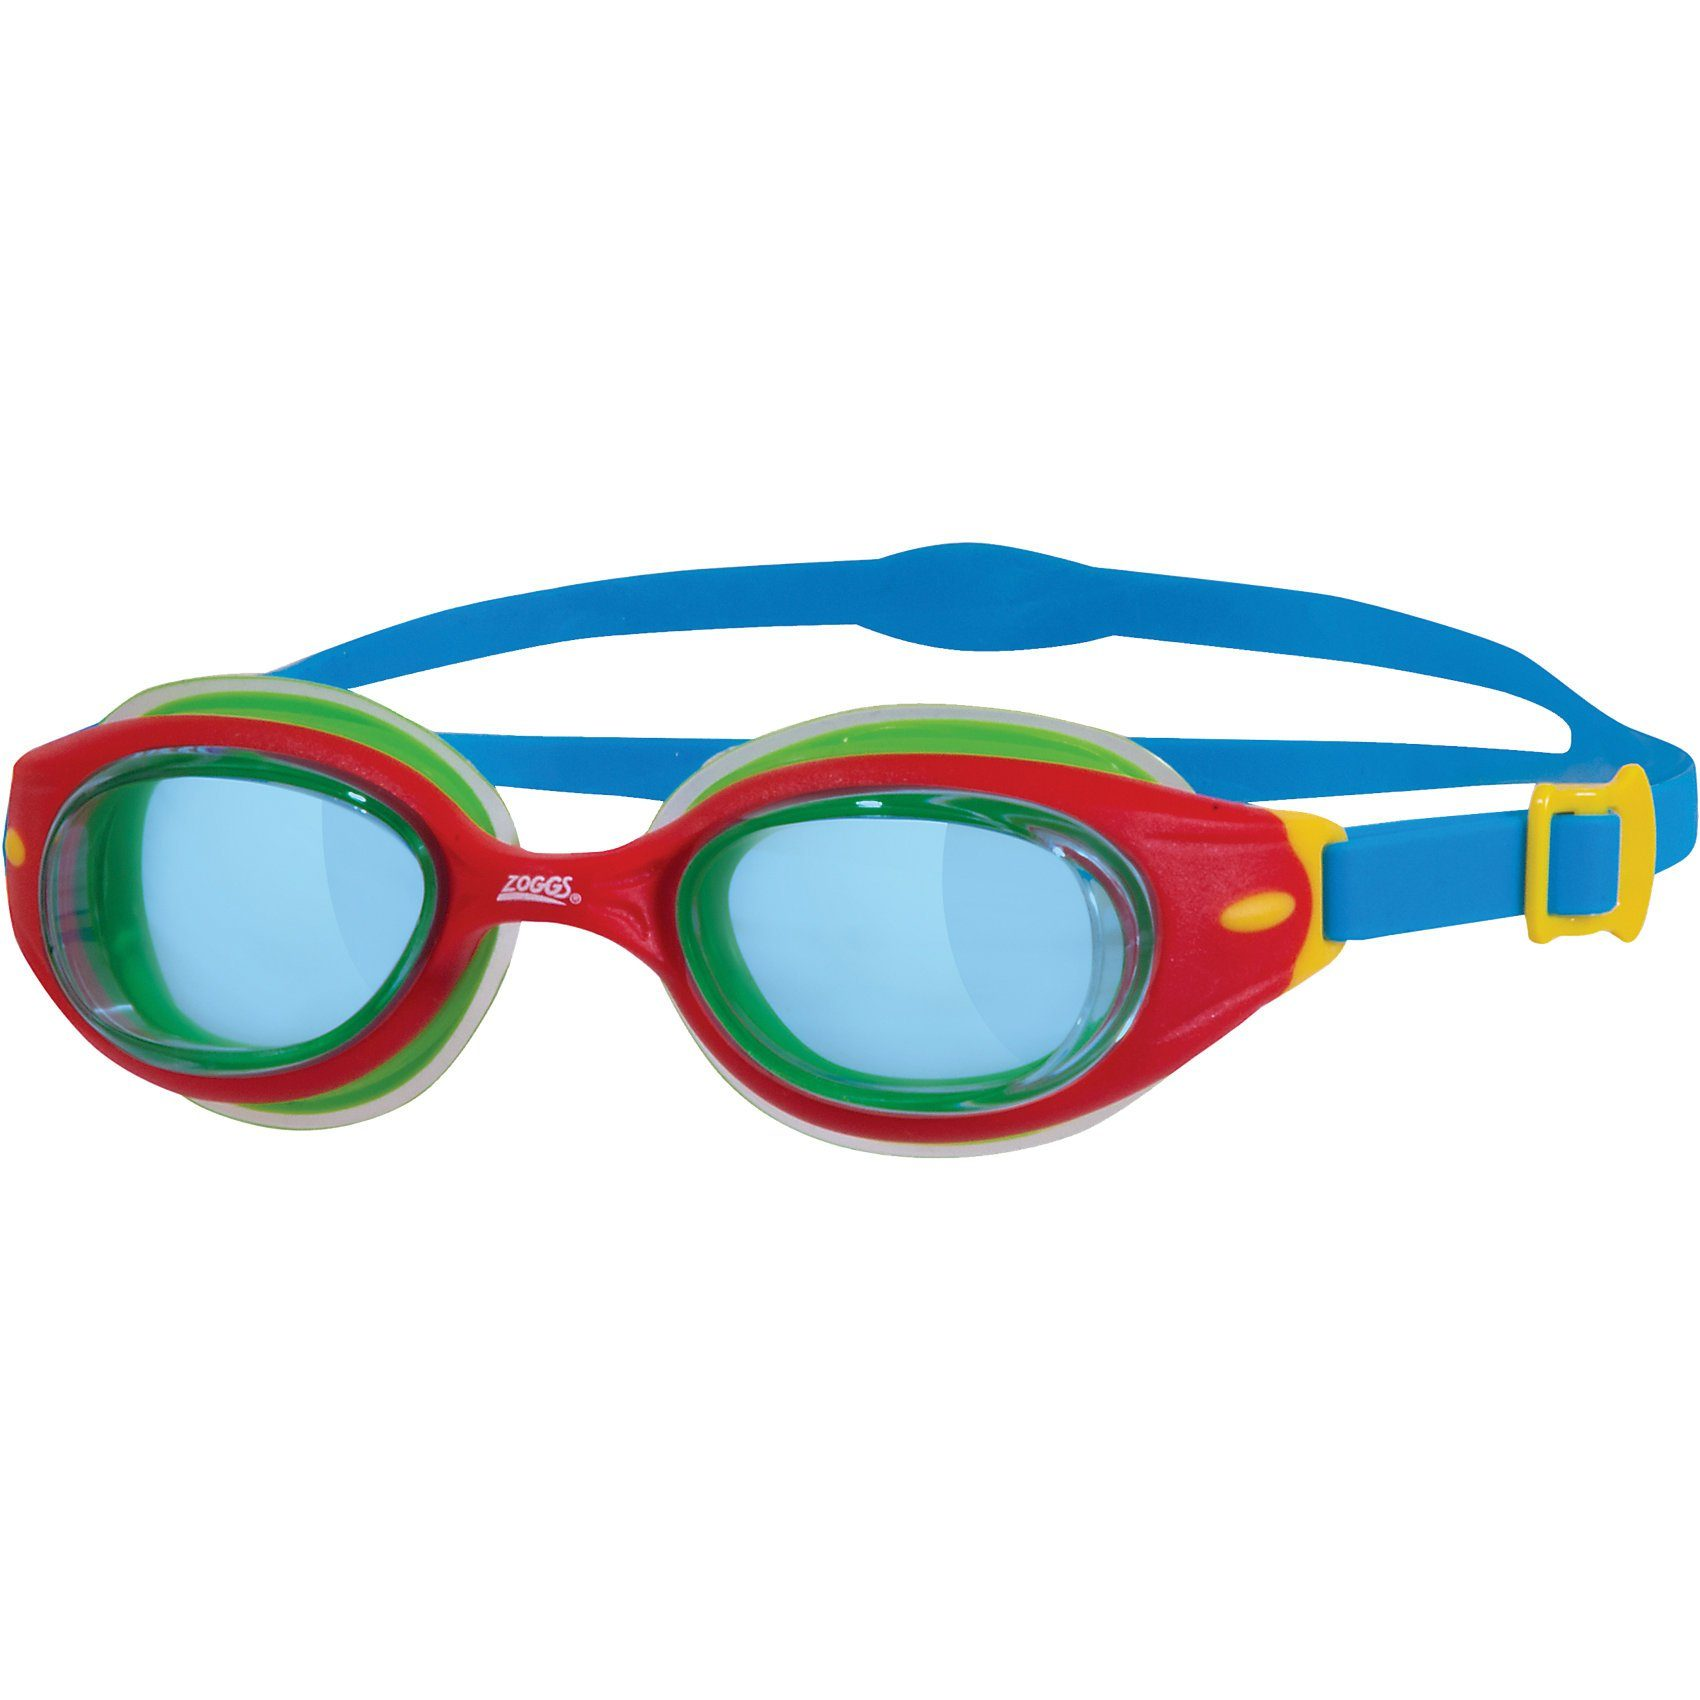 Zoggs Schwimmbrille Little Sonic Air, bunt